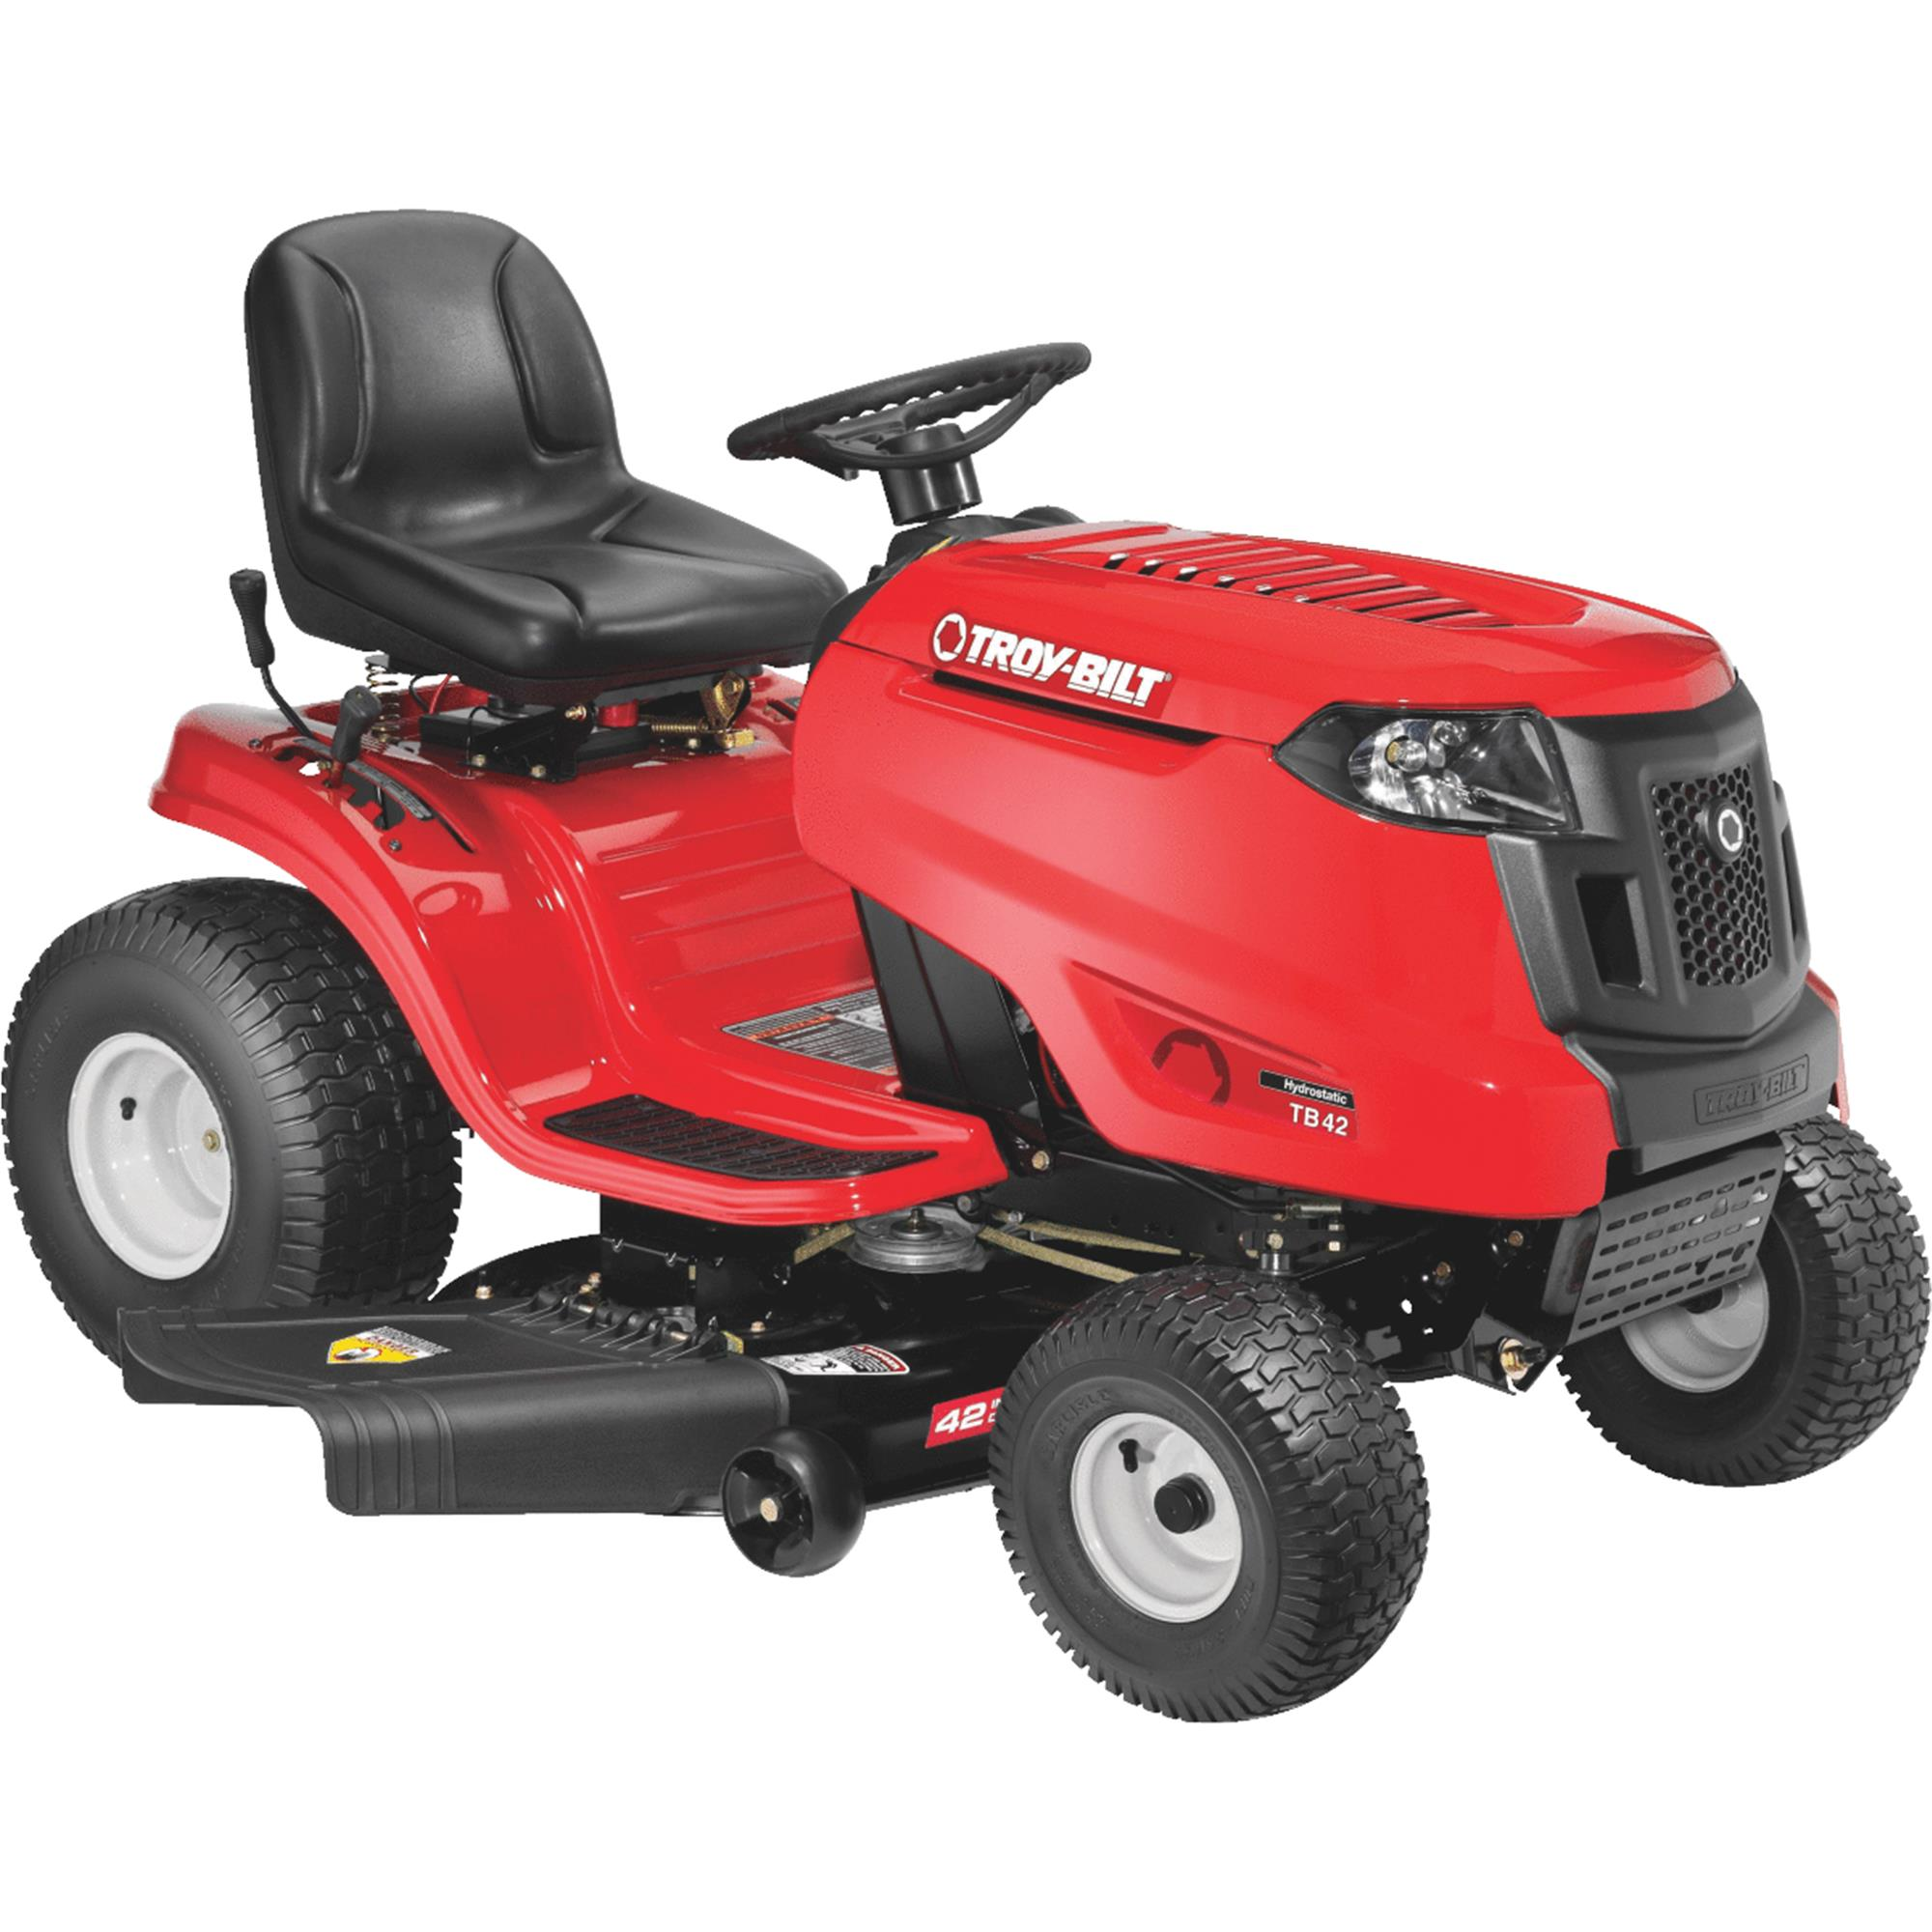 Troy Bilt Single-Cylinder Hydro Lawn Tractor by MTD PRODUCTS INC